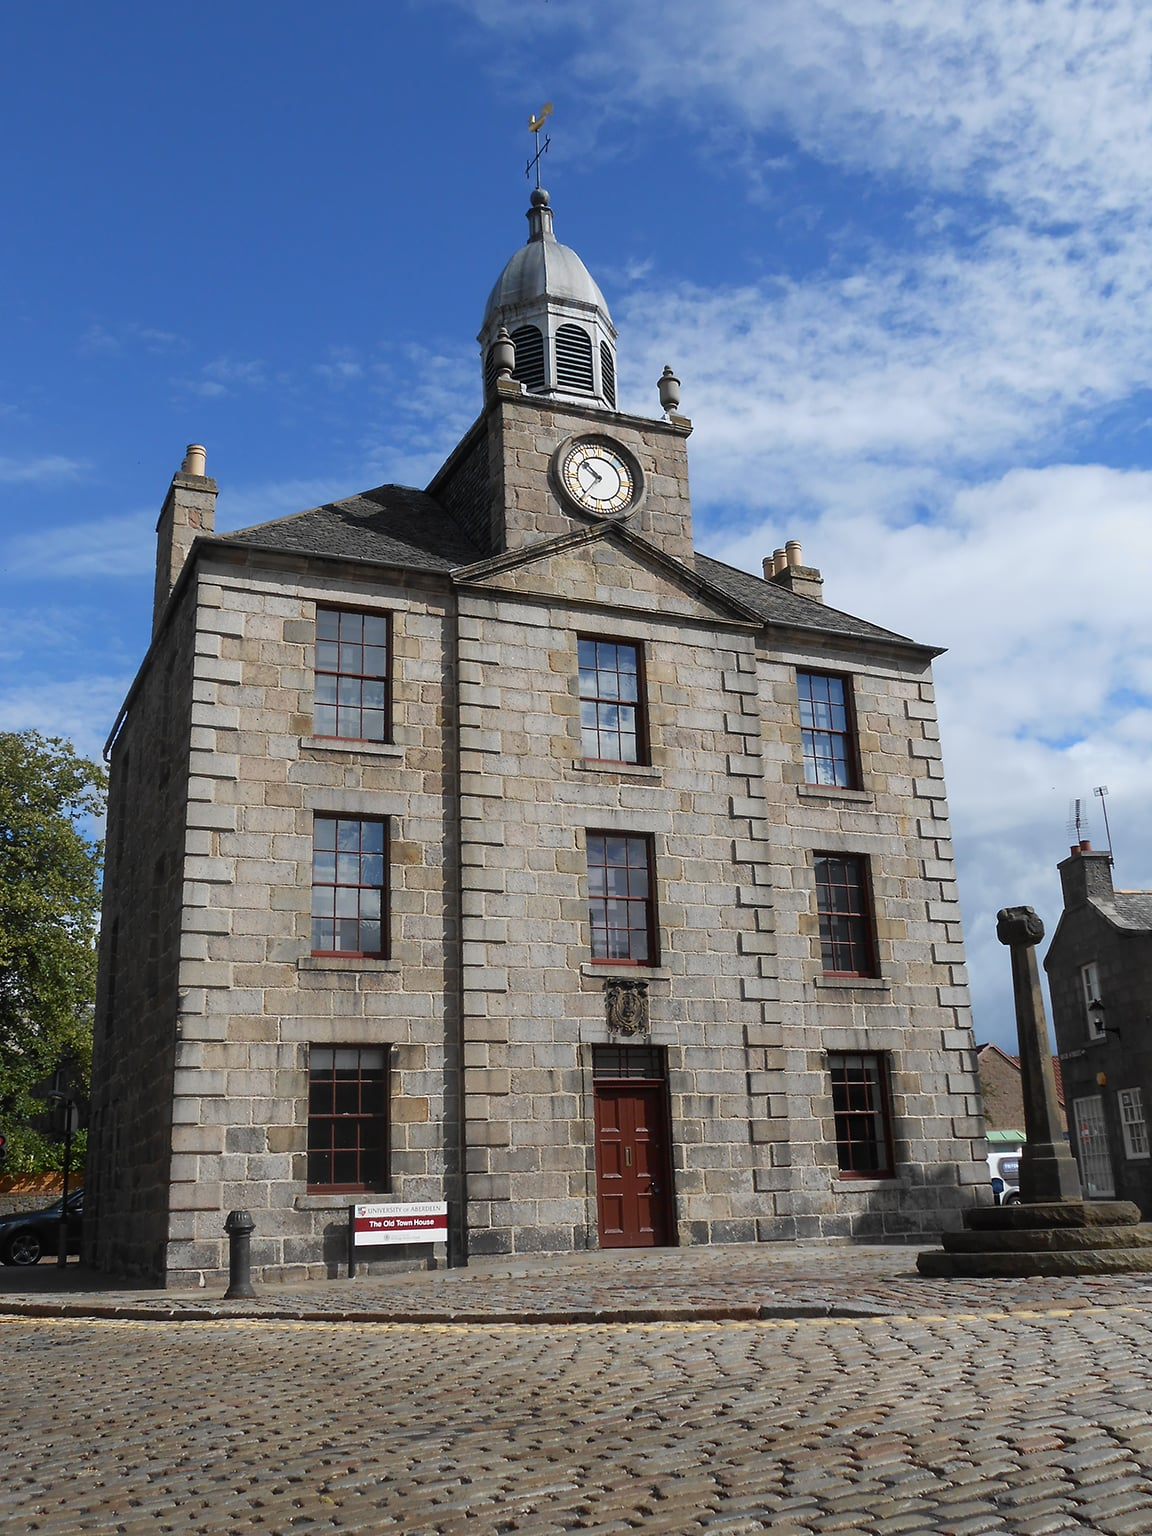 3. King's Museum, Aberdeenshire - Free to all